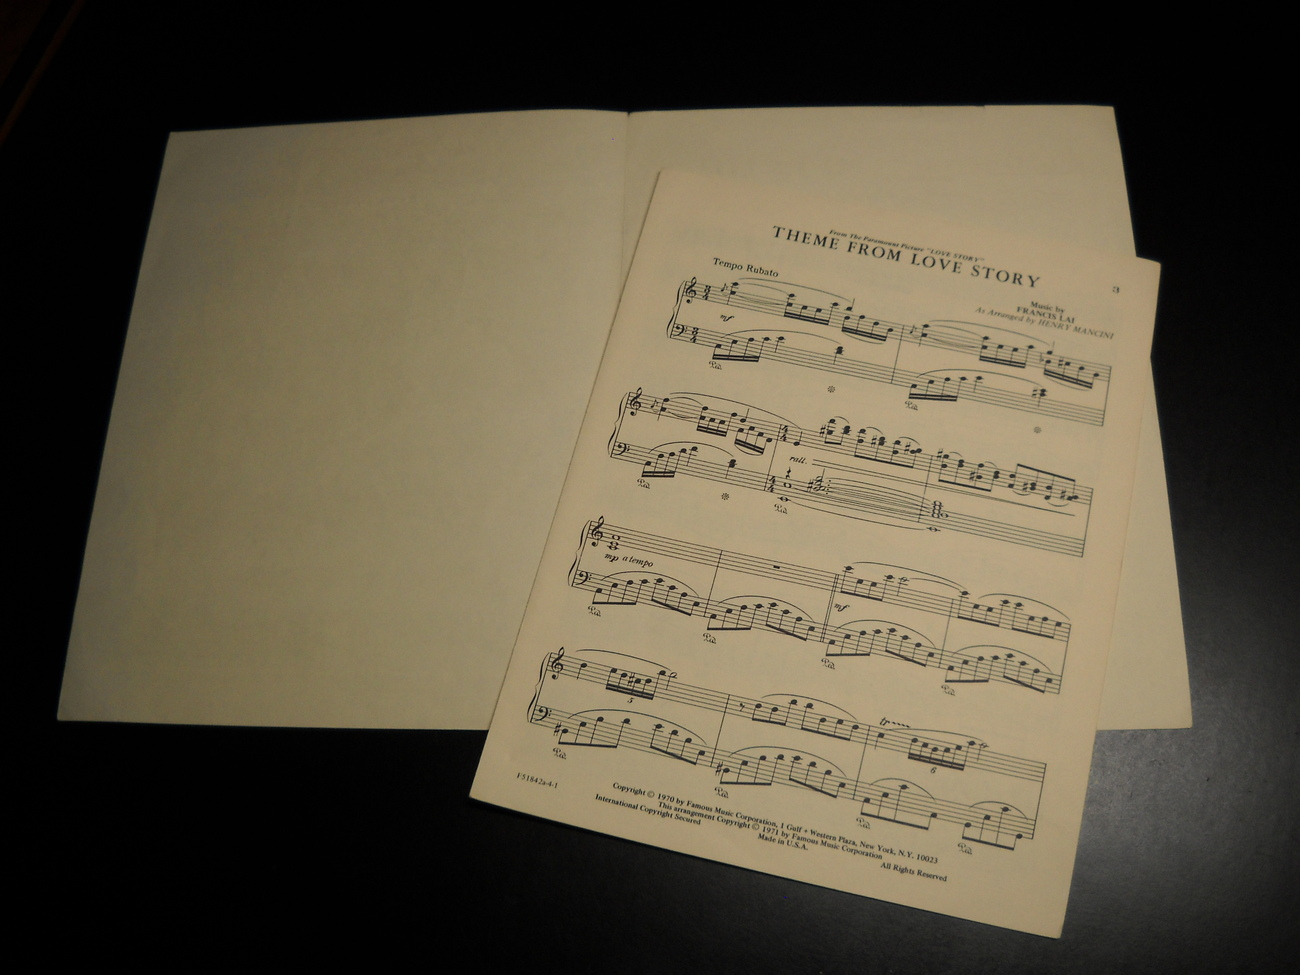 Sheet_music_theme_from_love_story_henry_mancini_1971_famous_music_02